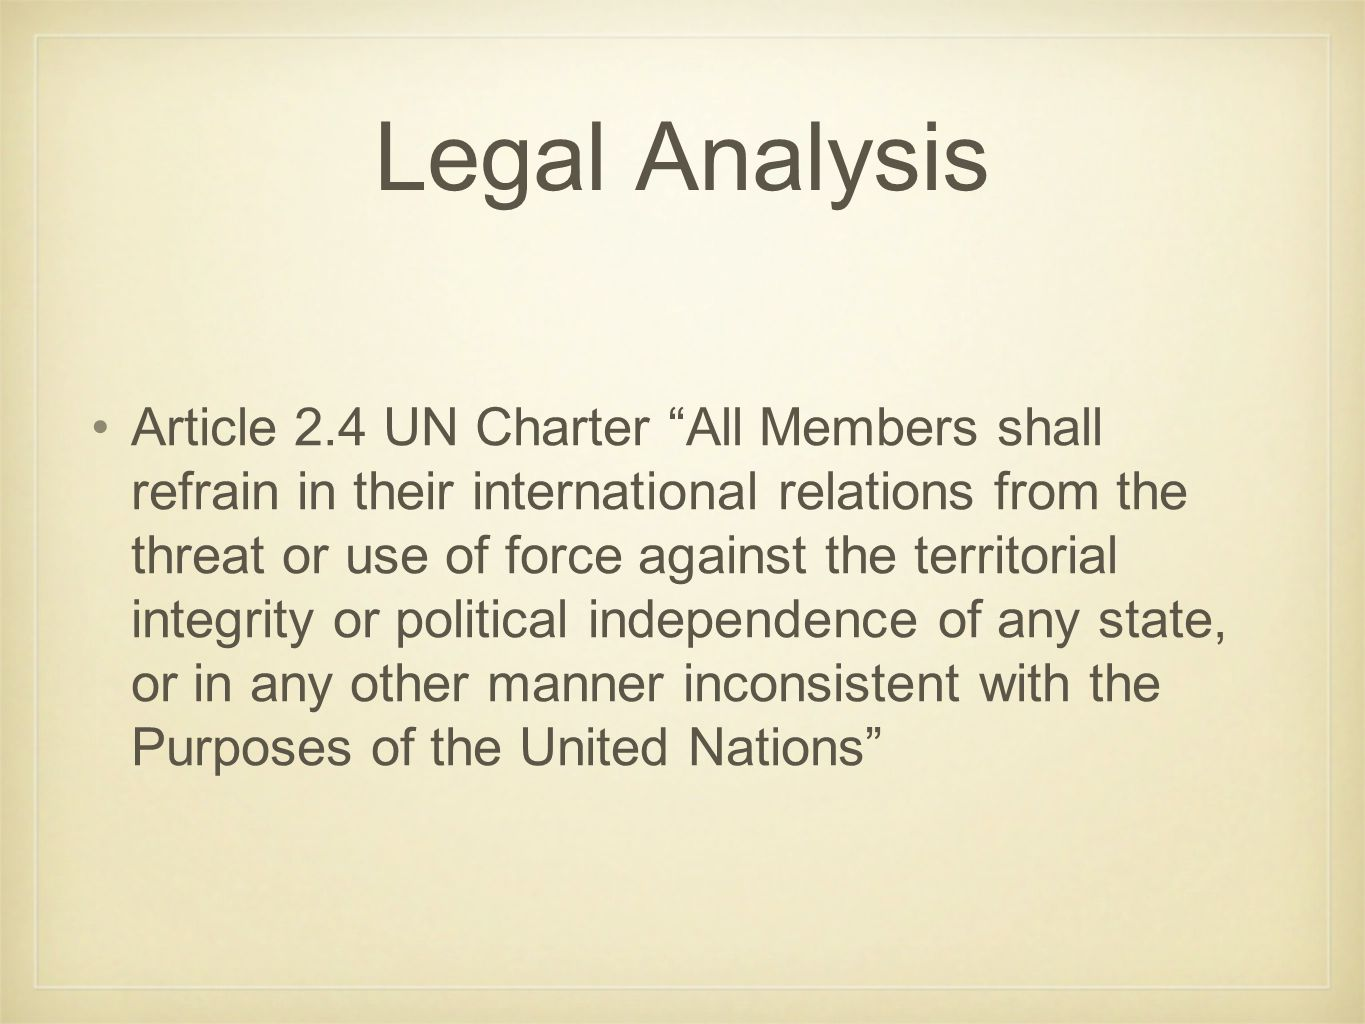 Legal Analysis Article 2.4 UN Charter All Members shall refrain in their international relations from the threat or use of force against the territorial integrity or political independence of any state, or in any other manner inconsistent with the Purposes of the United Nations